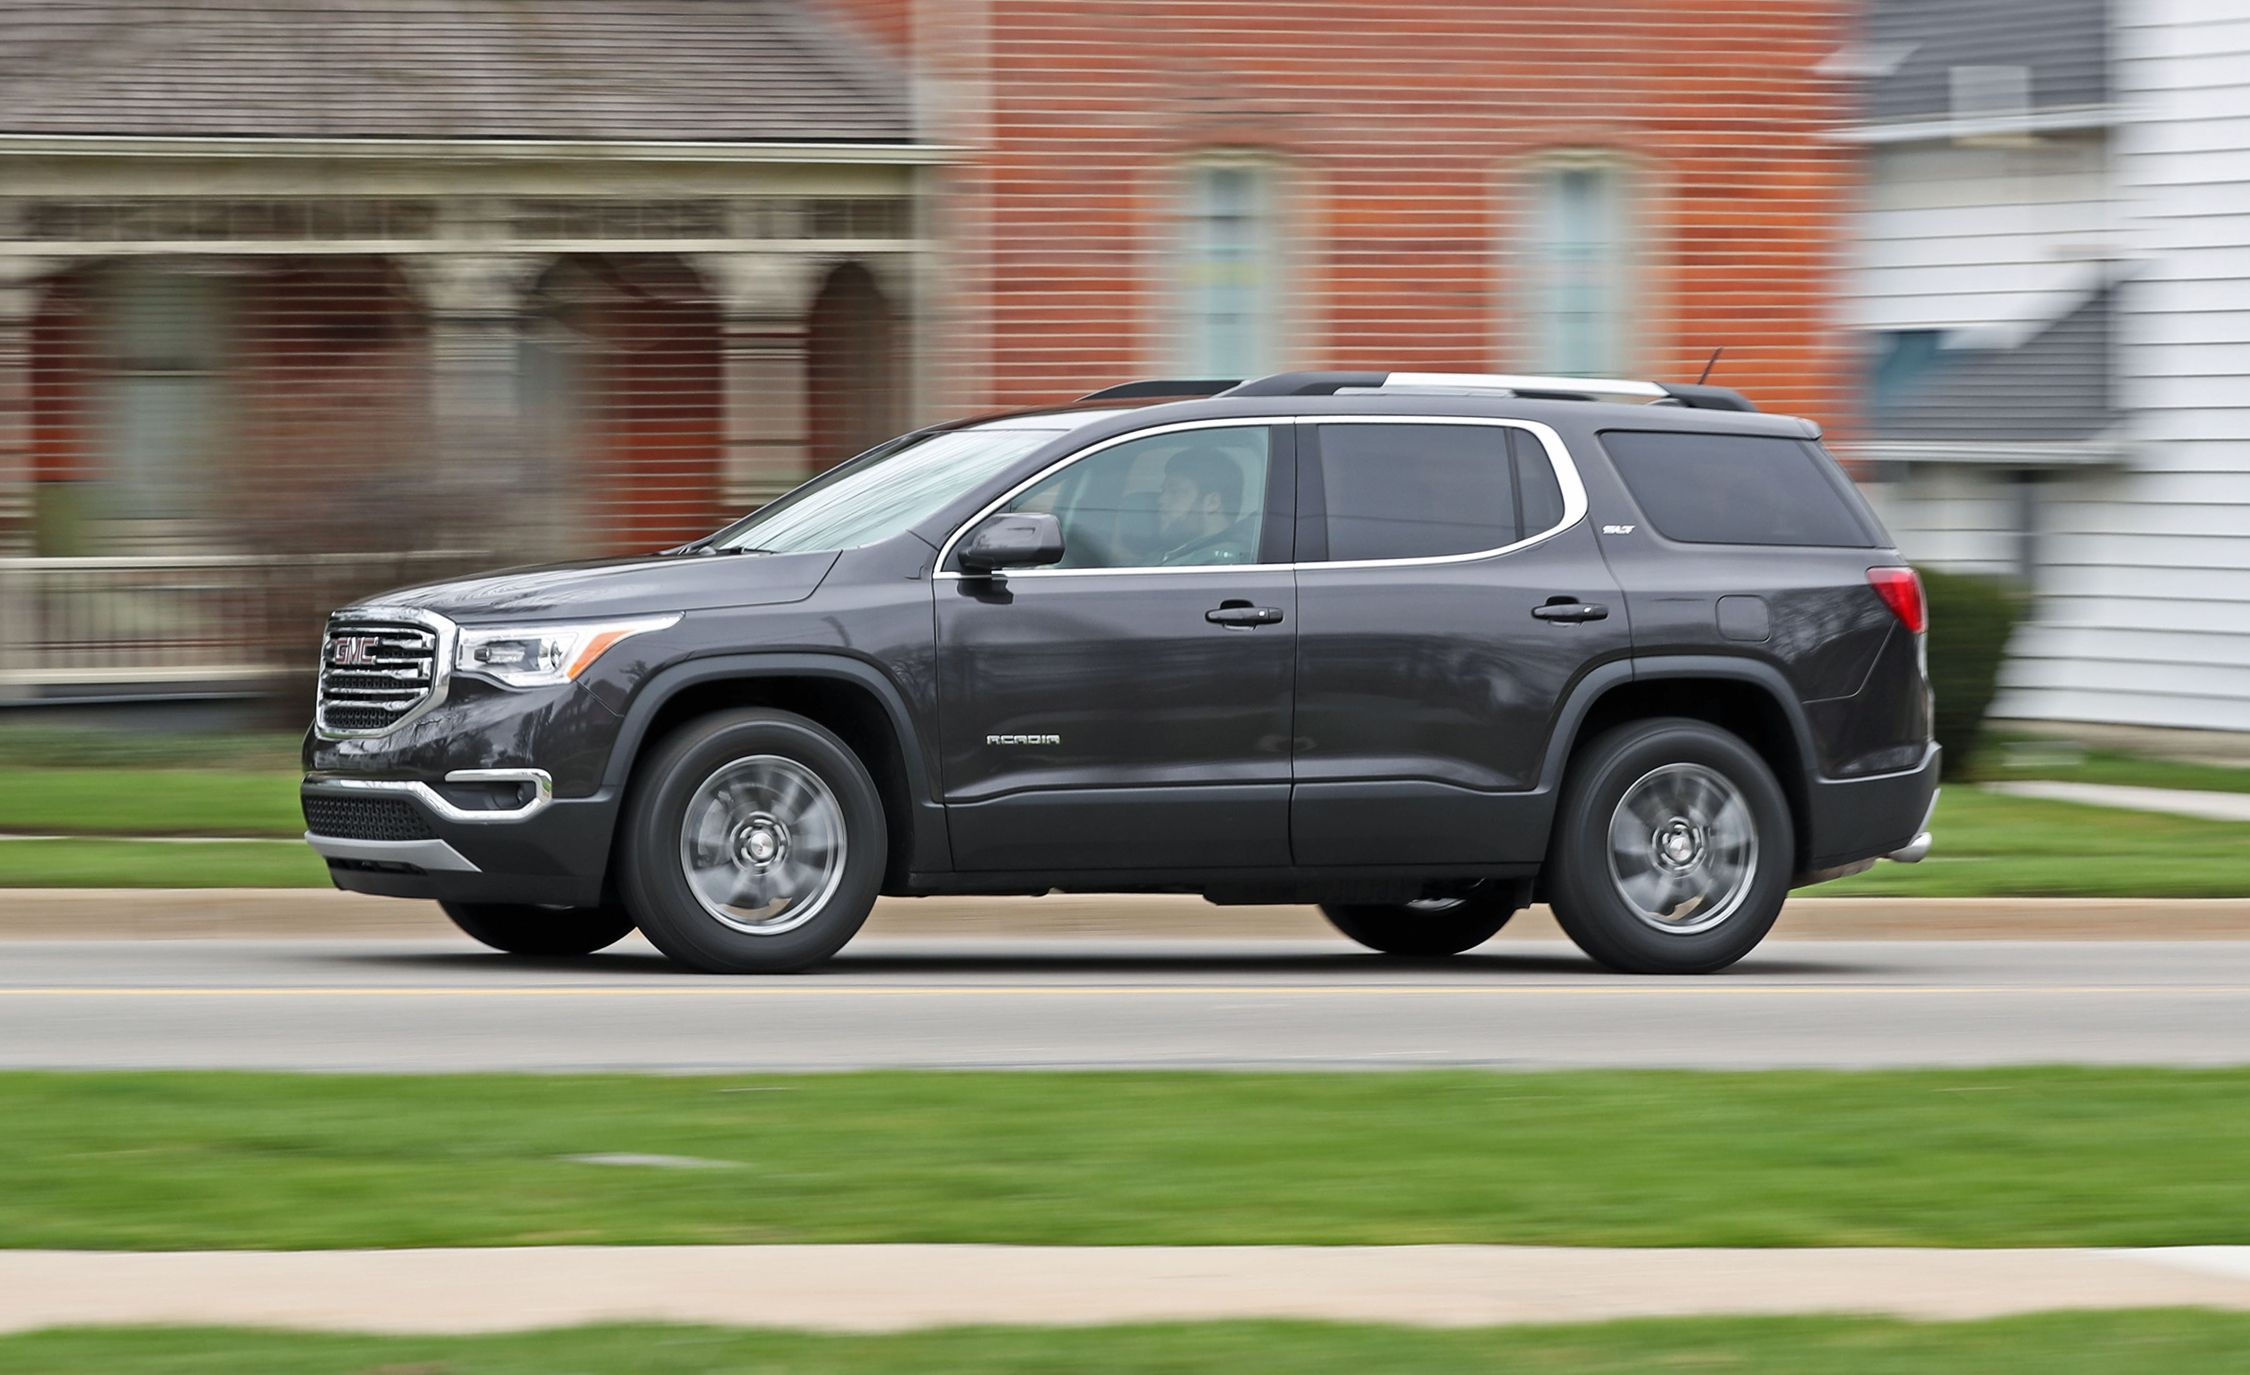 2018 gmc acadia denali. beautiful acadia in 2018 gmc acadia denali